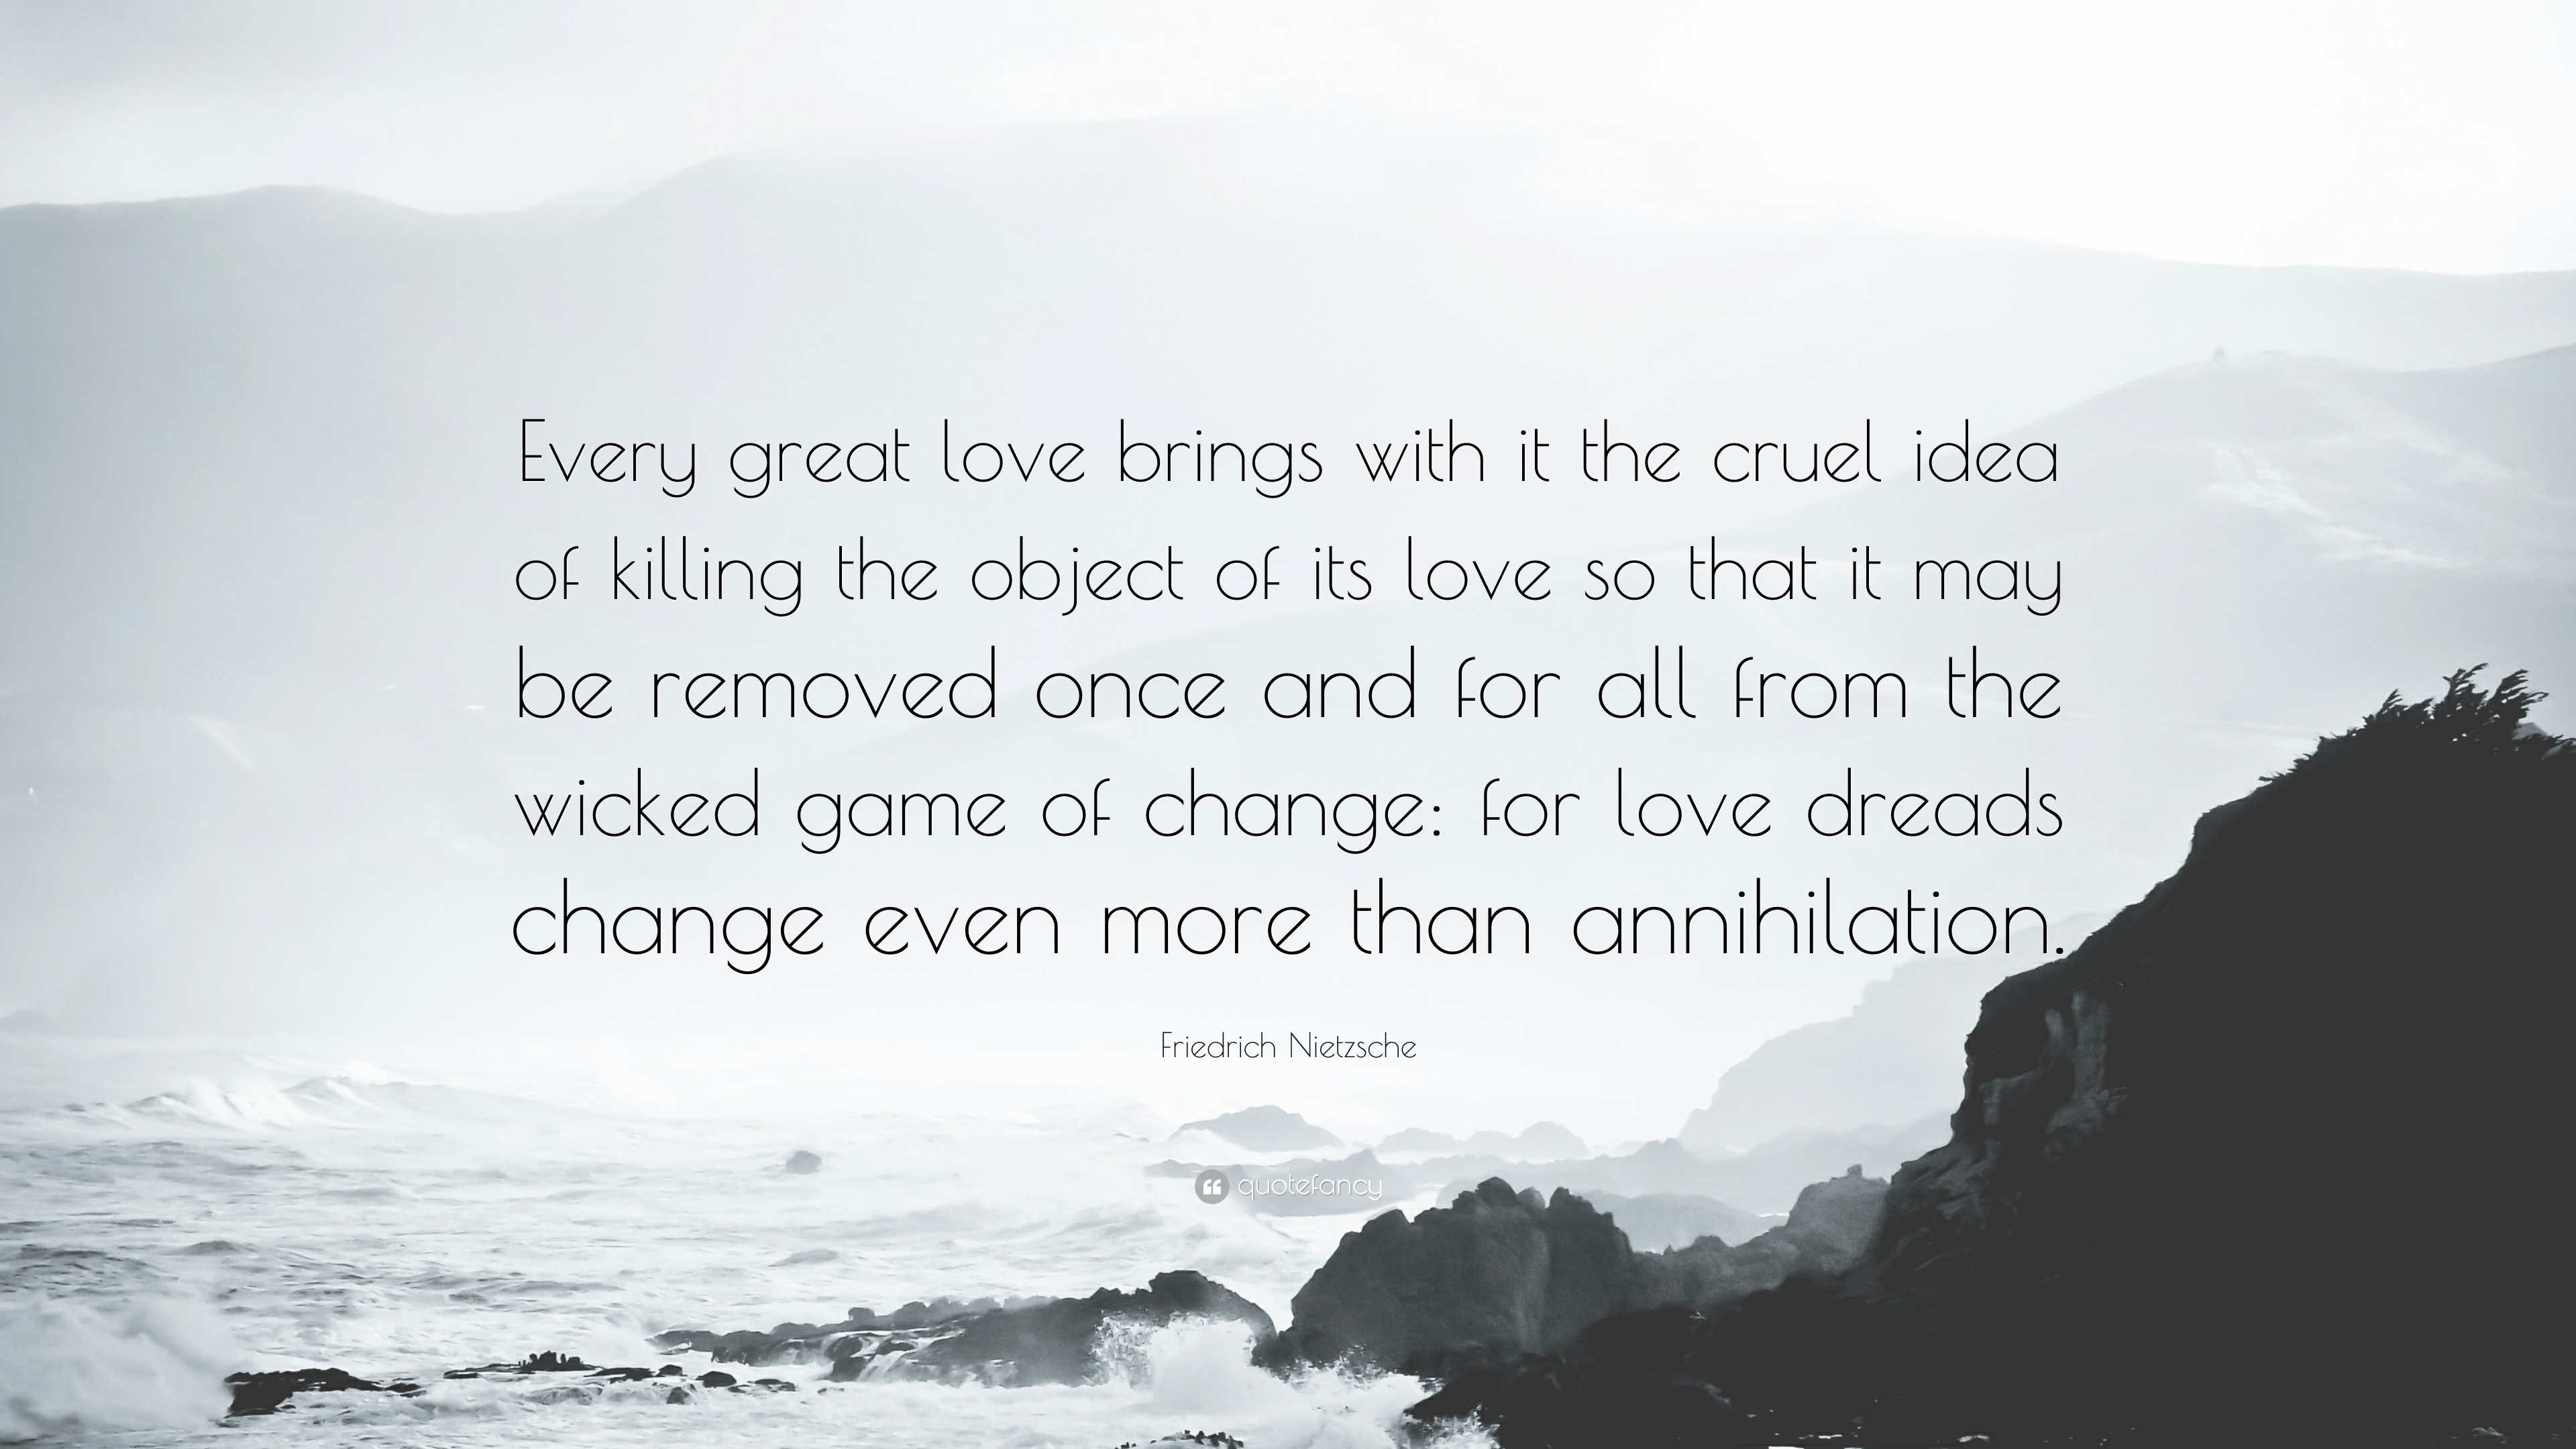 Friedrich Nietzsche Quote Every Great Love Brings With It The